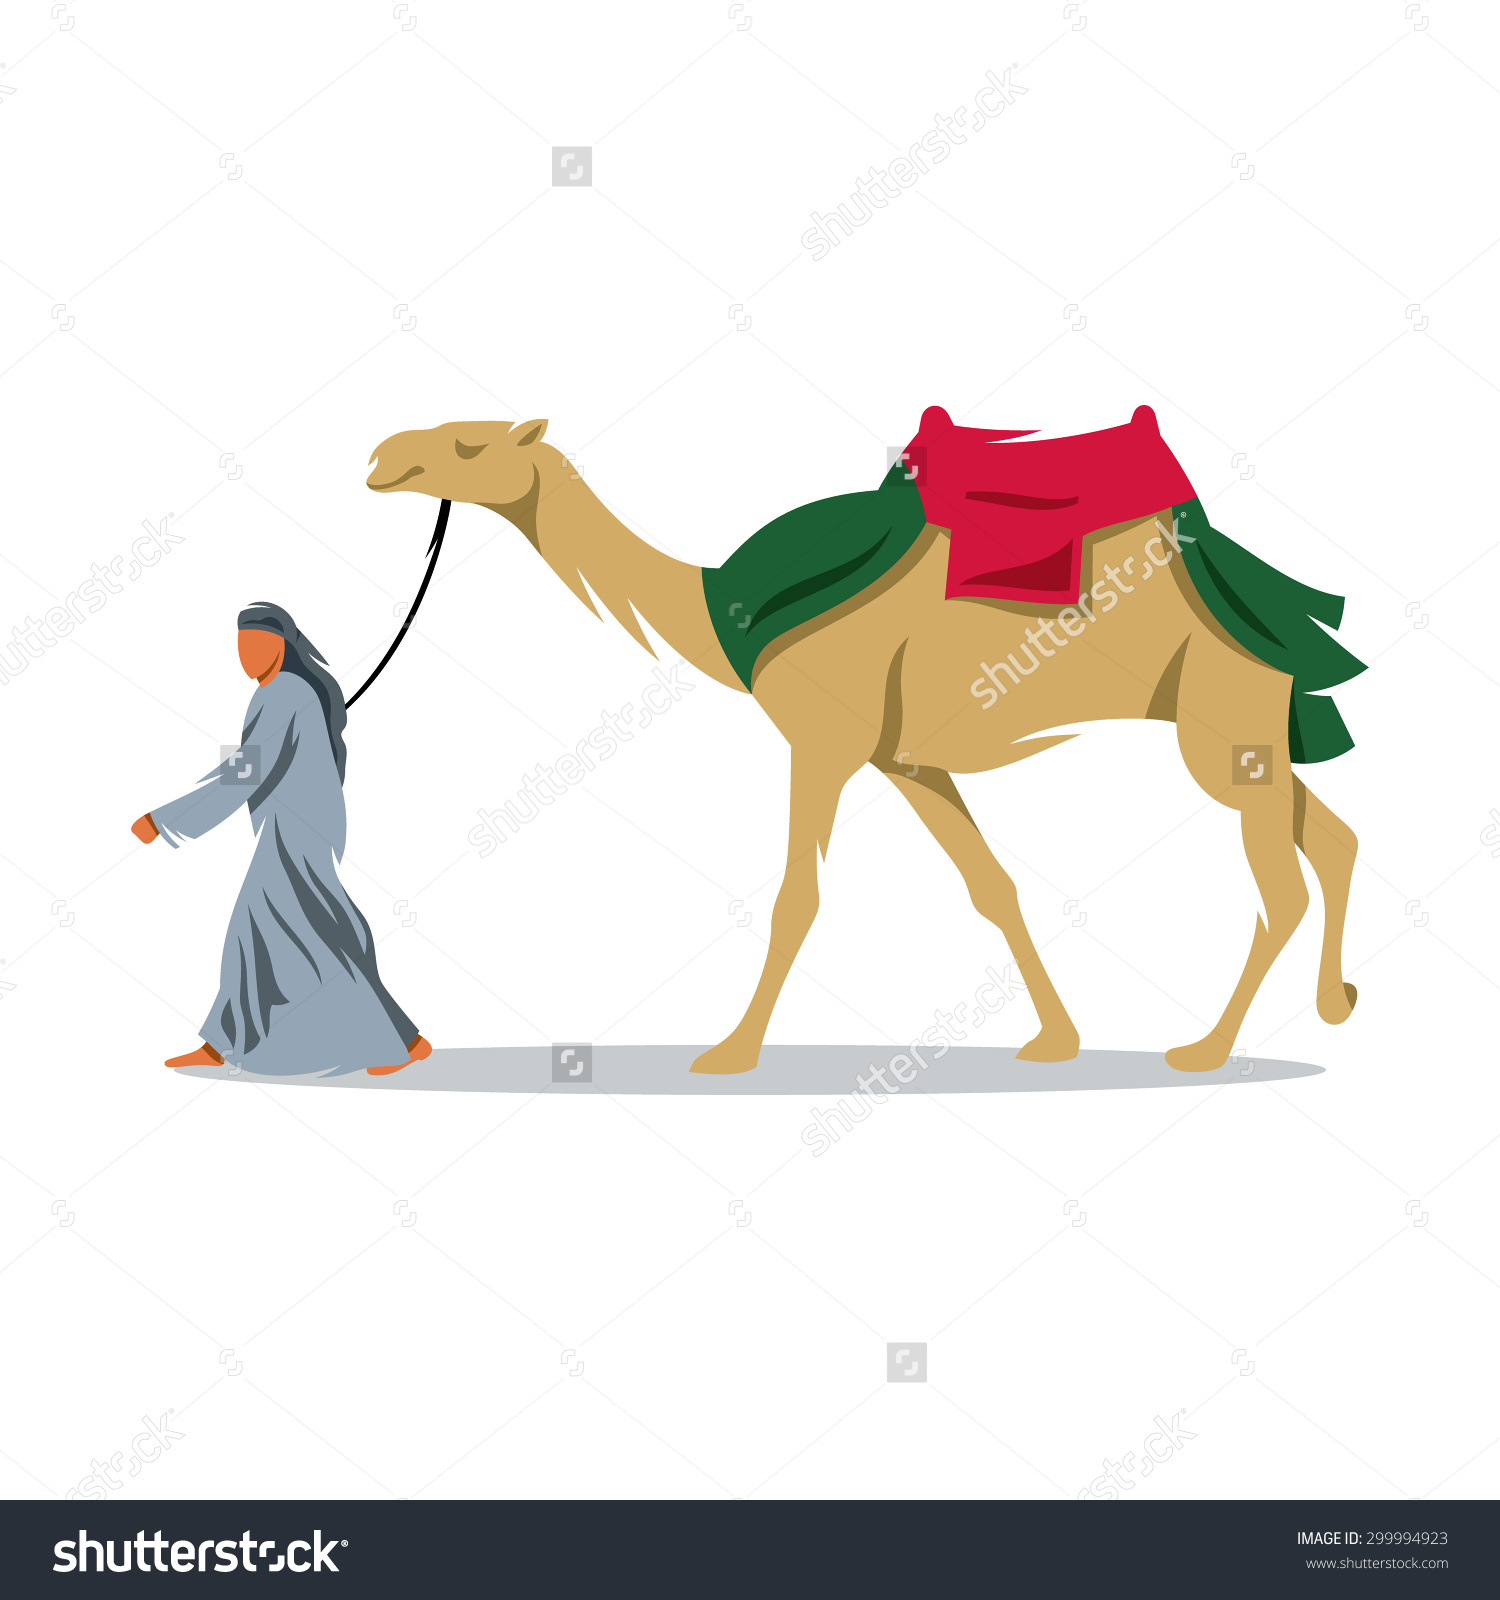 Cameleer Sign Arab Bedouin Camel Desert Stock Vector 299994923.